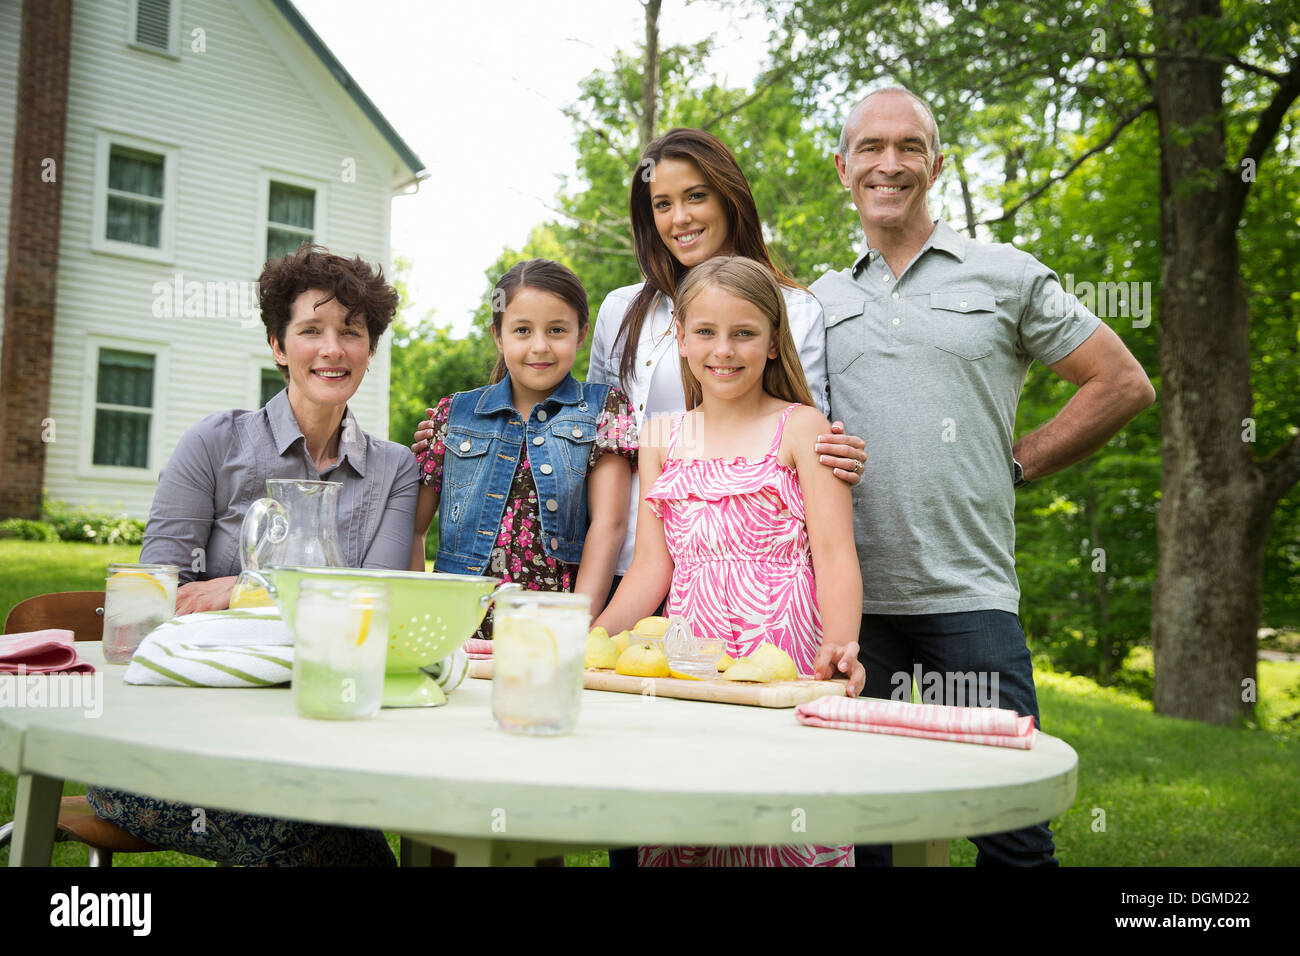 A summer family gathering at a farm. Five people posing beside the table, where a child is making fresh lemonade. - Stock Image